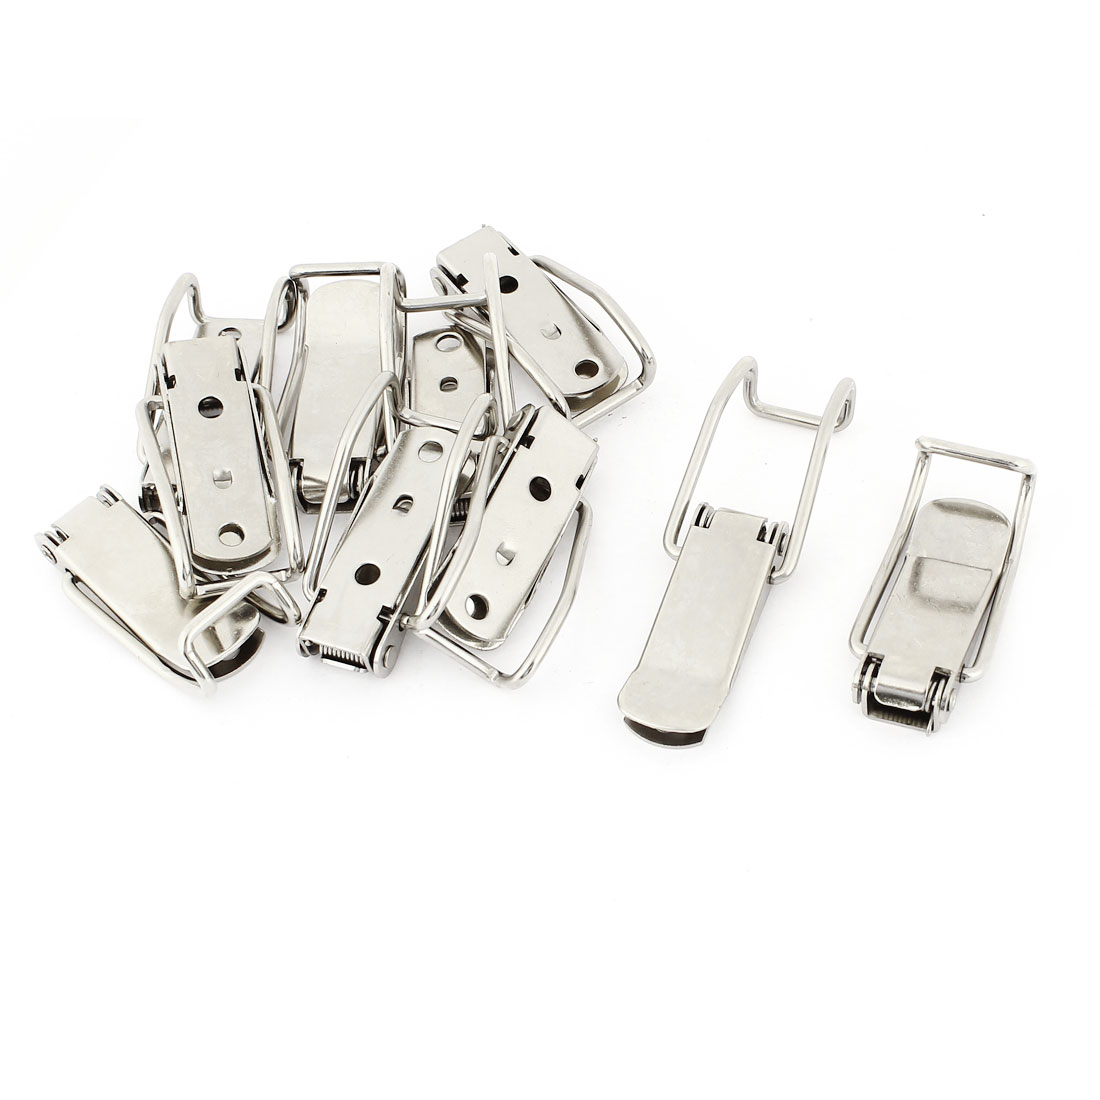 Case Box Cabinet Stainless Steel Spring Loaded Draw Toggle Latch 10pcs